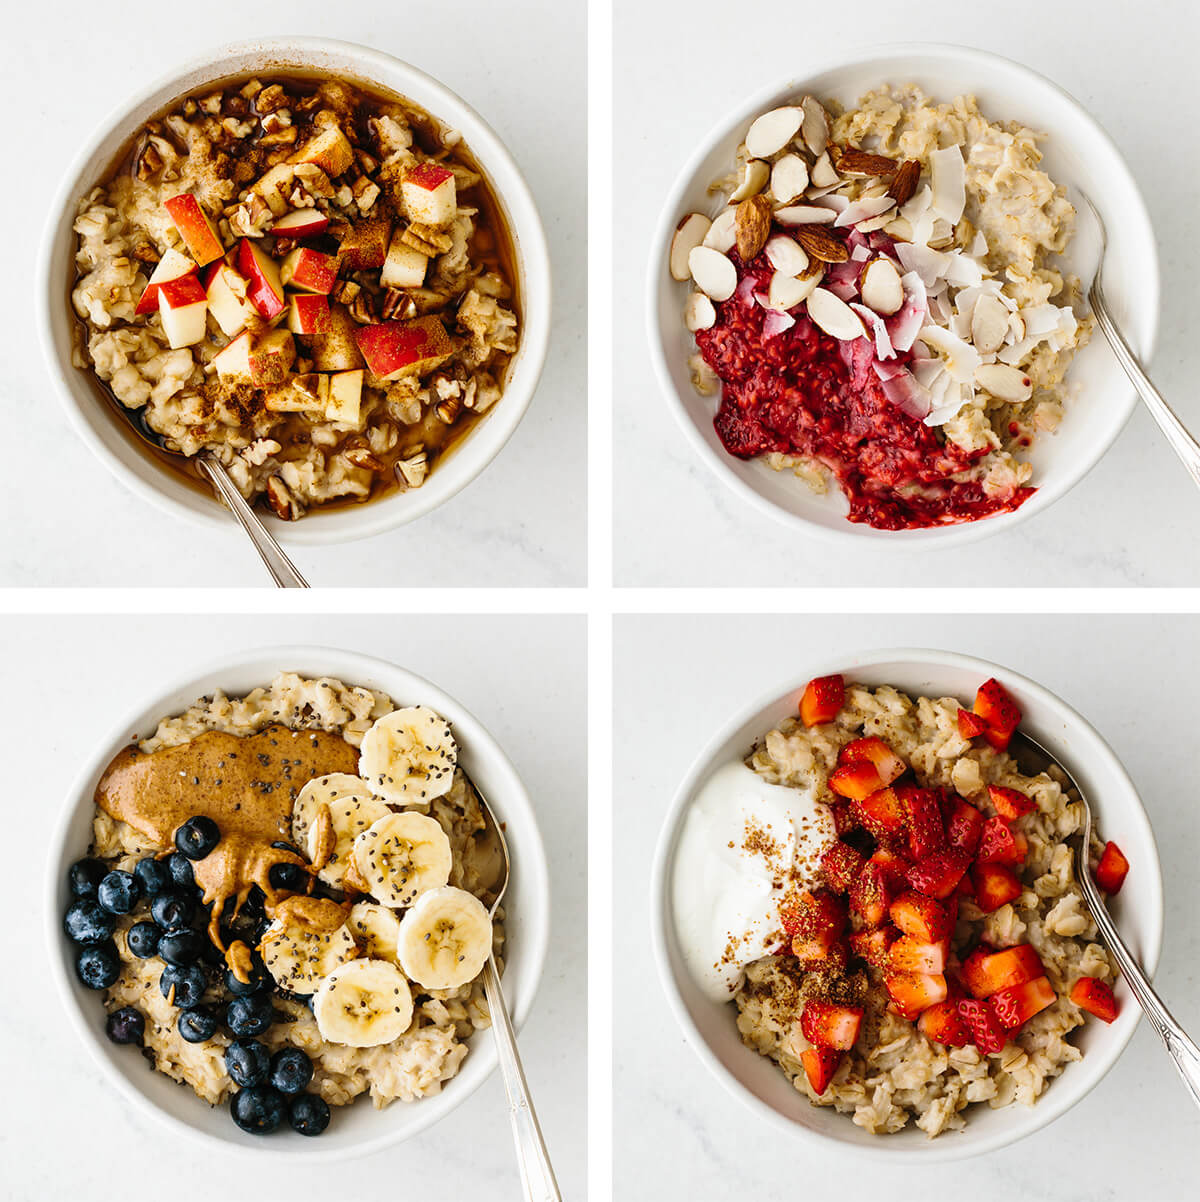 Bowls of sweet oatmeal flavors on a table.